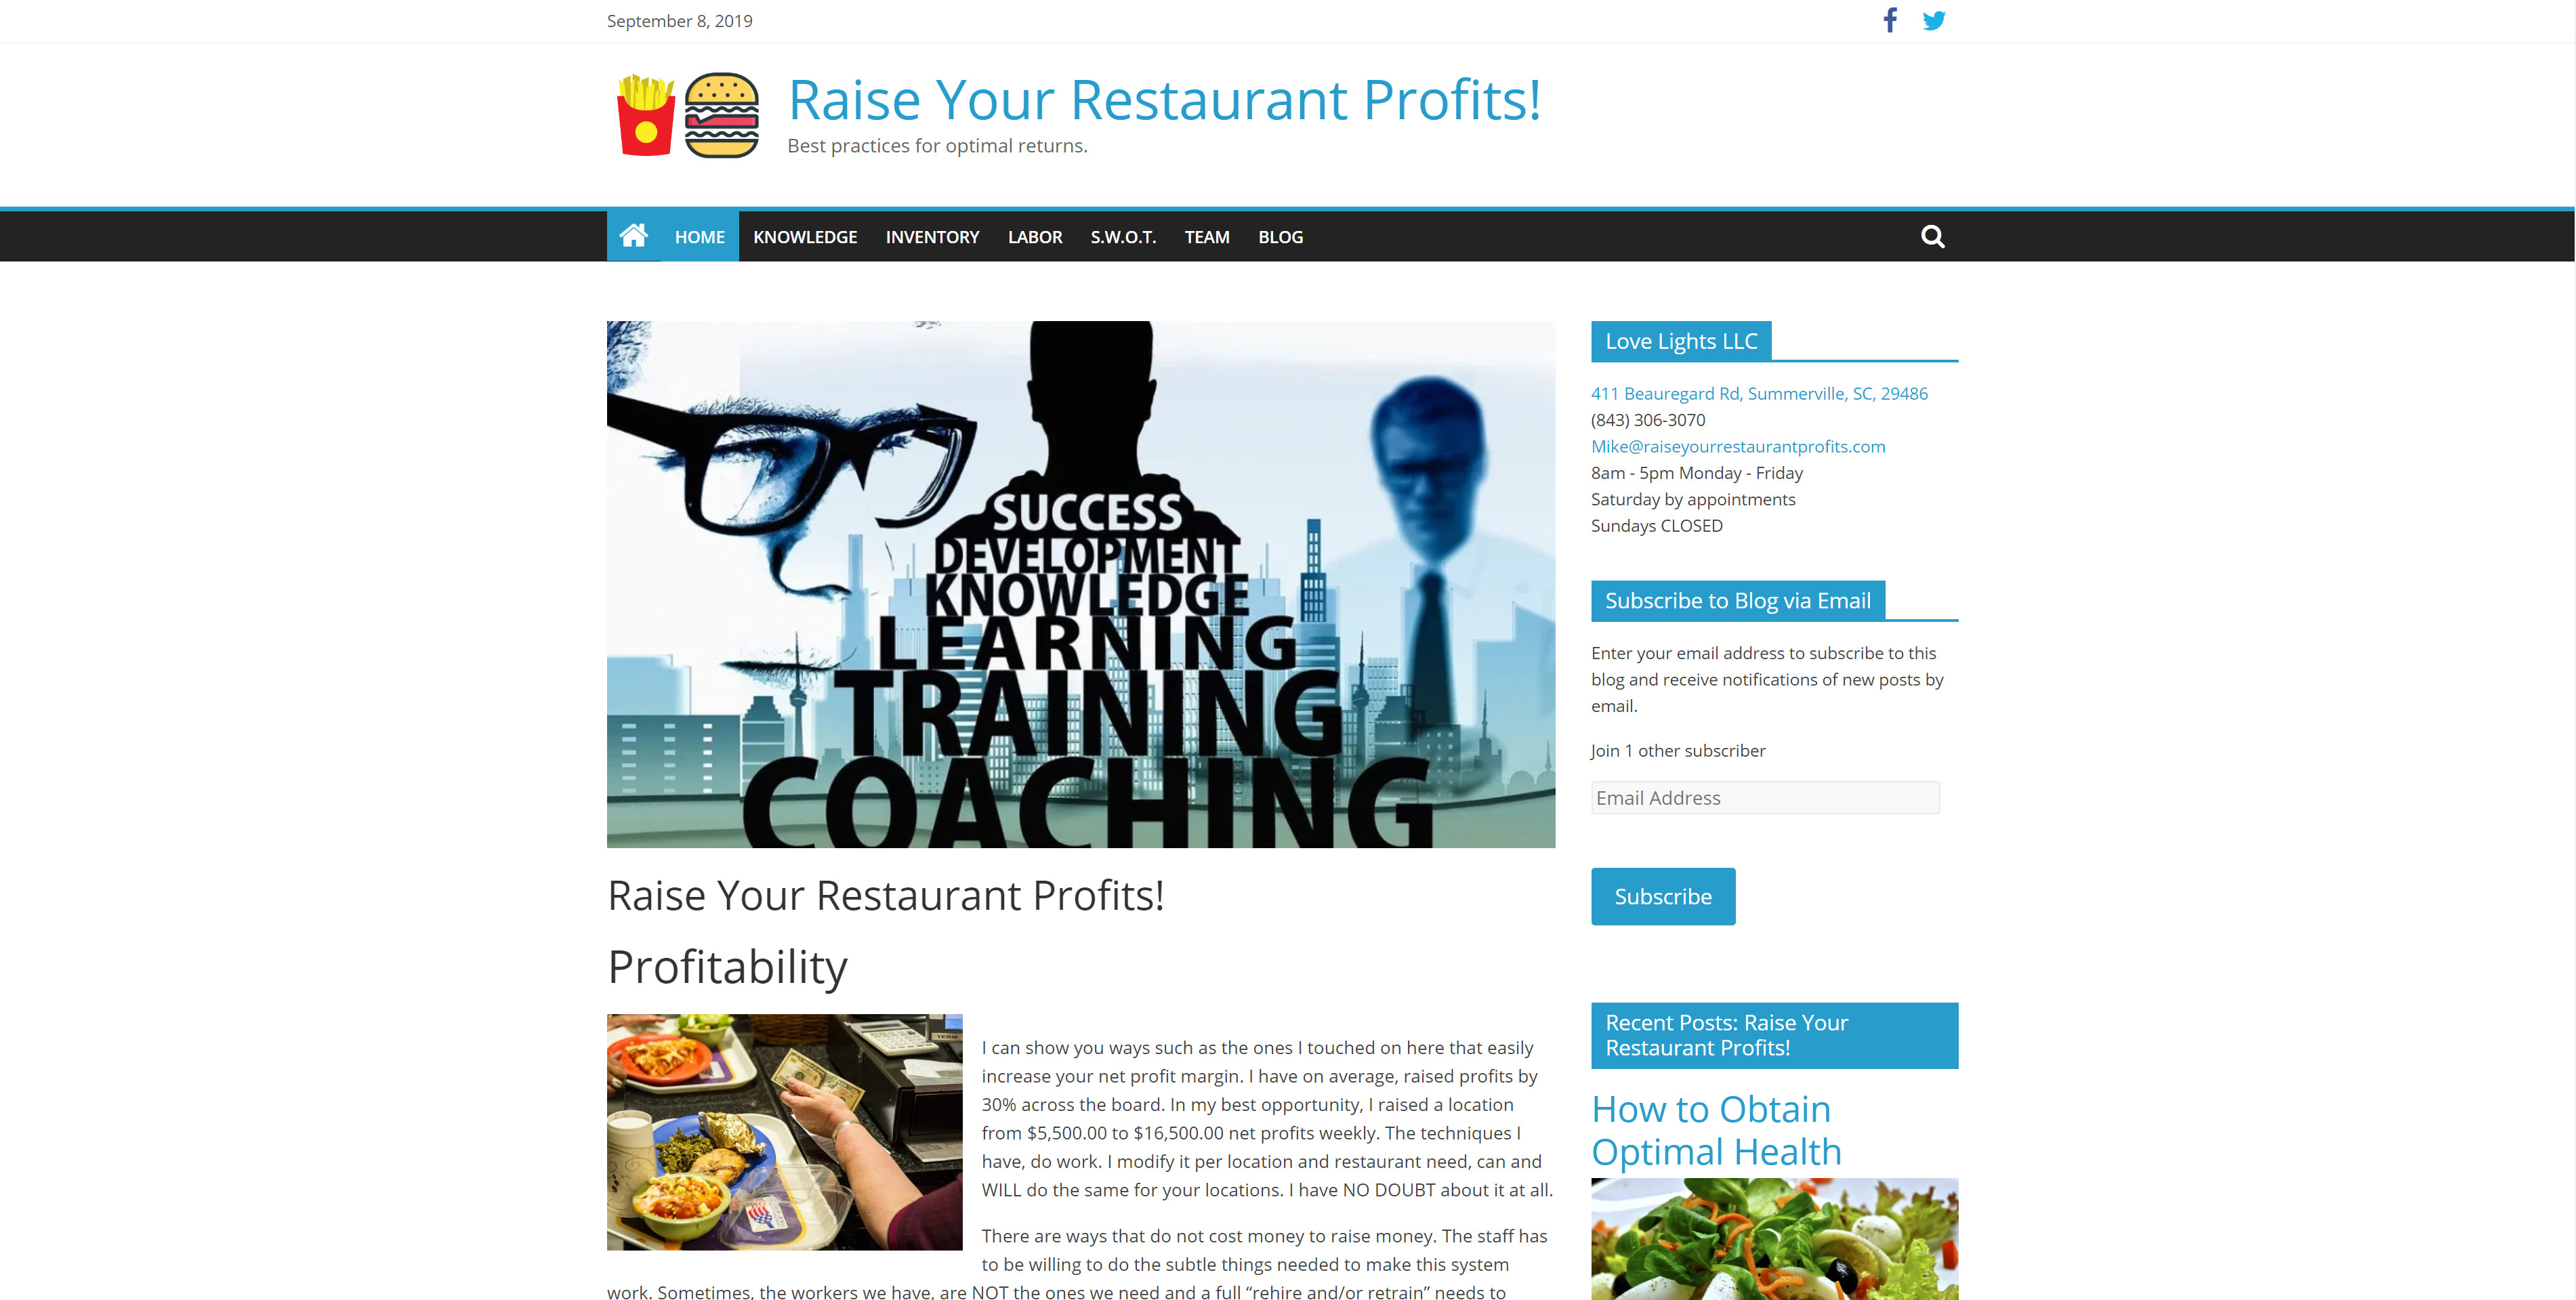 Raise Your Restaurant Profits!